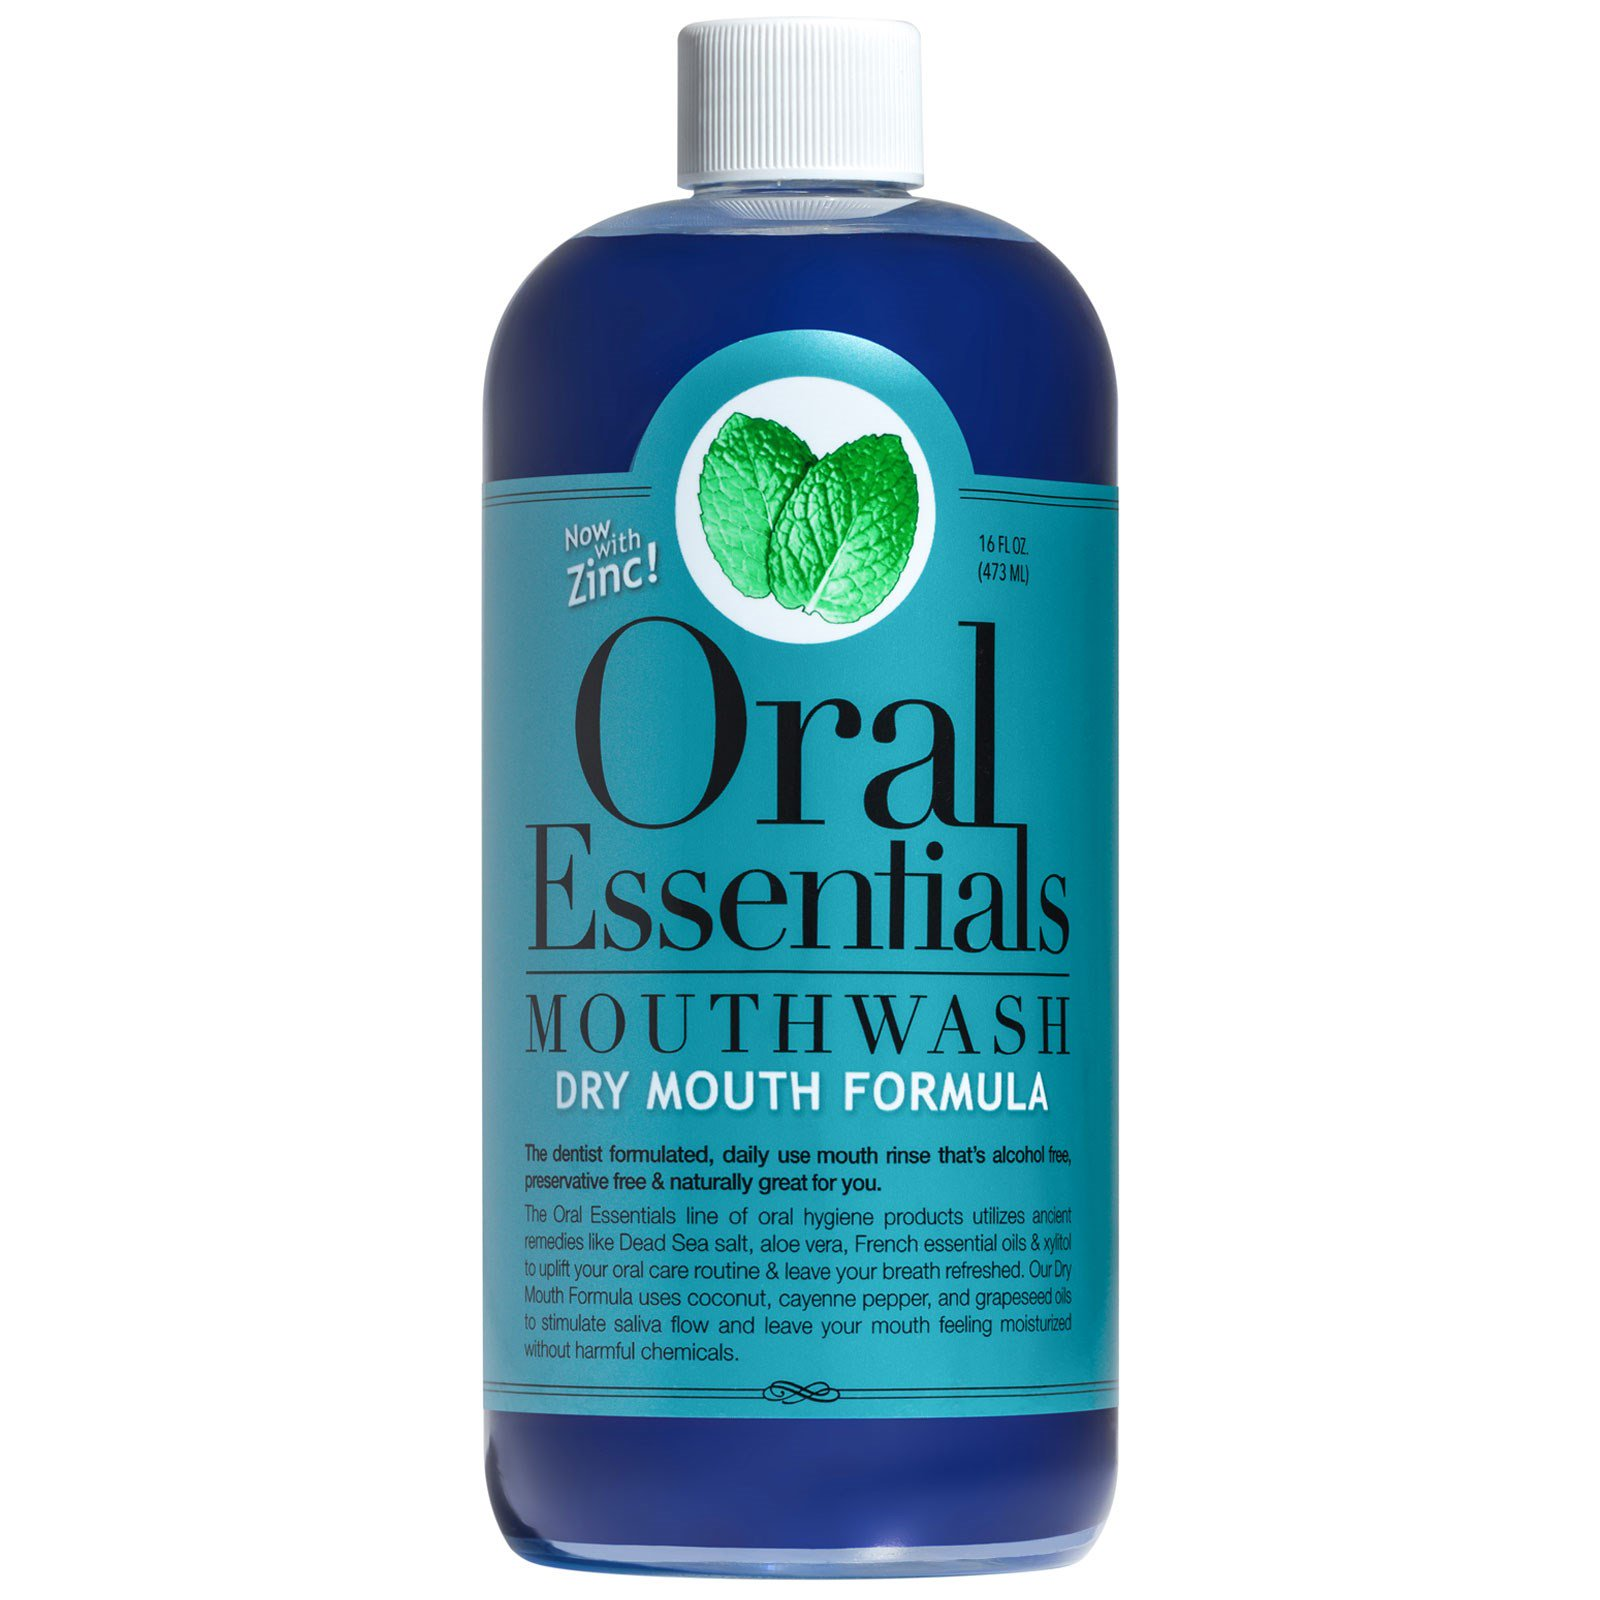 Image of Dry Mouth Formula Mouthwash